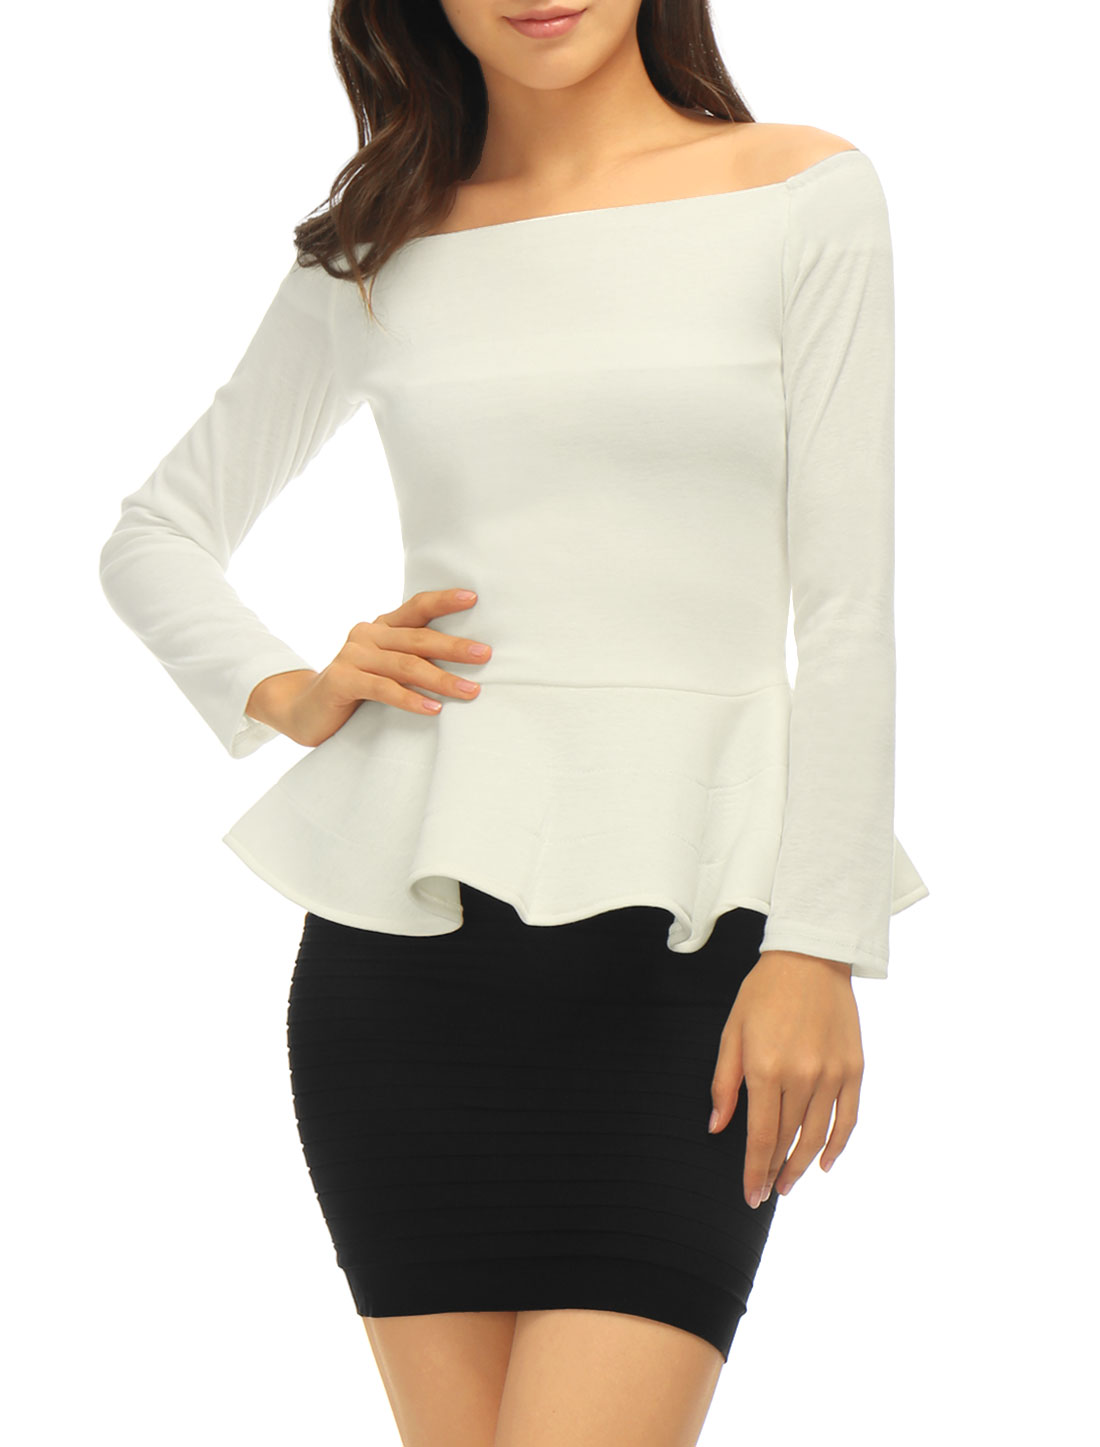 Women Off Shoulder Long Sleeves Slim Fit Peplum Top White XS